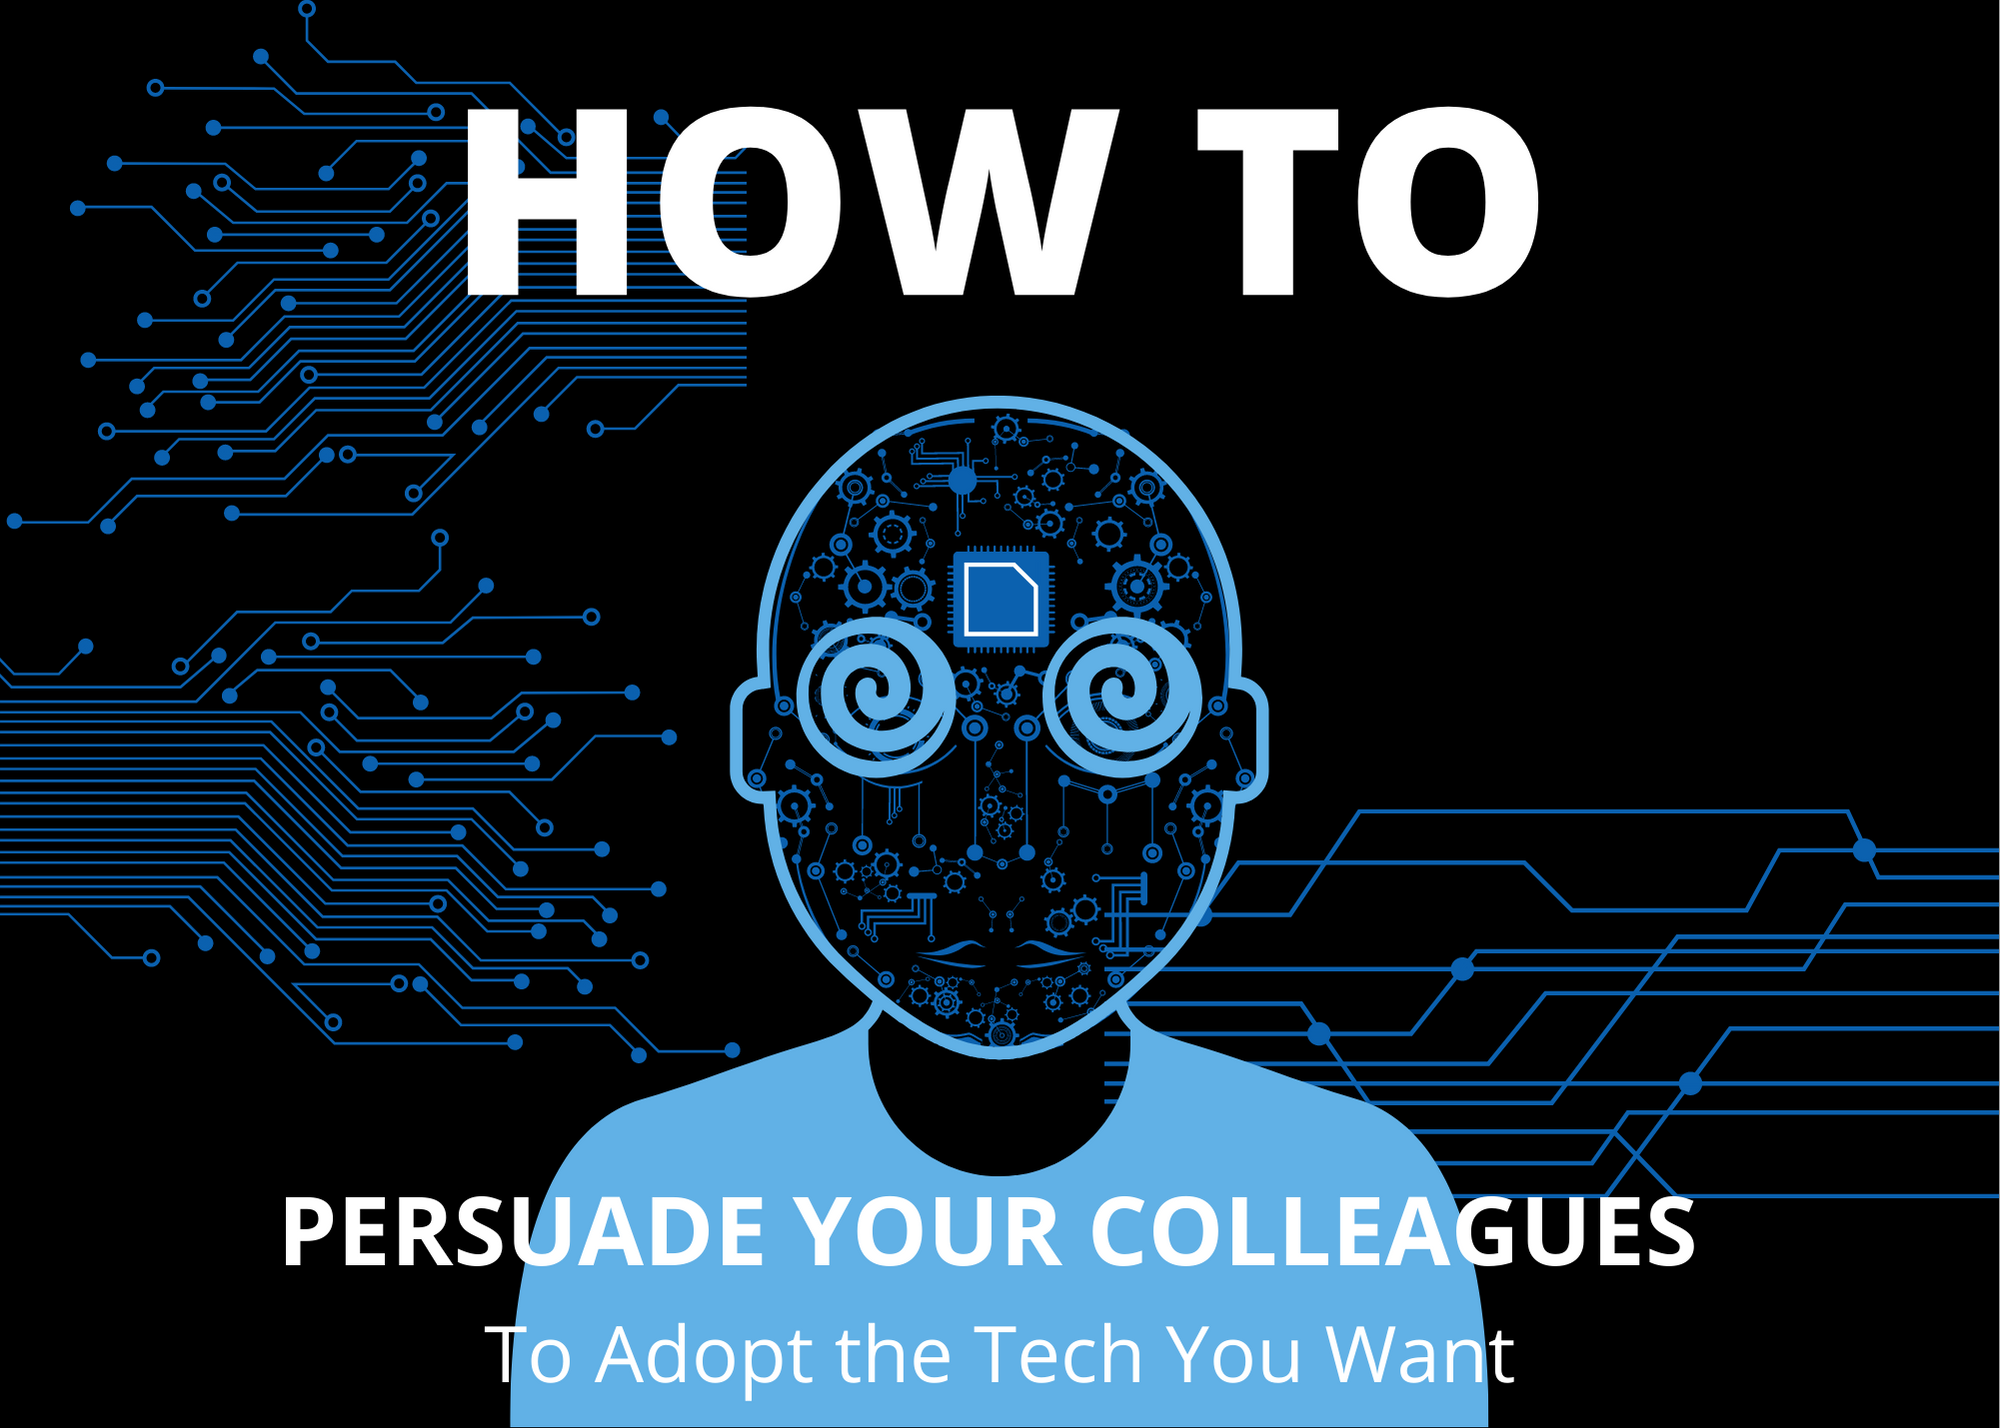 how to persuade your colleagues to adopt the technology you want